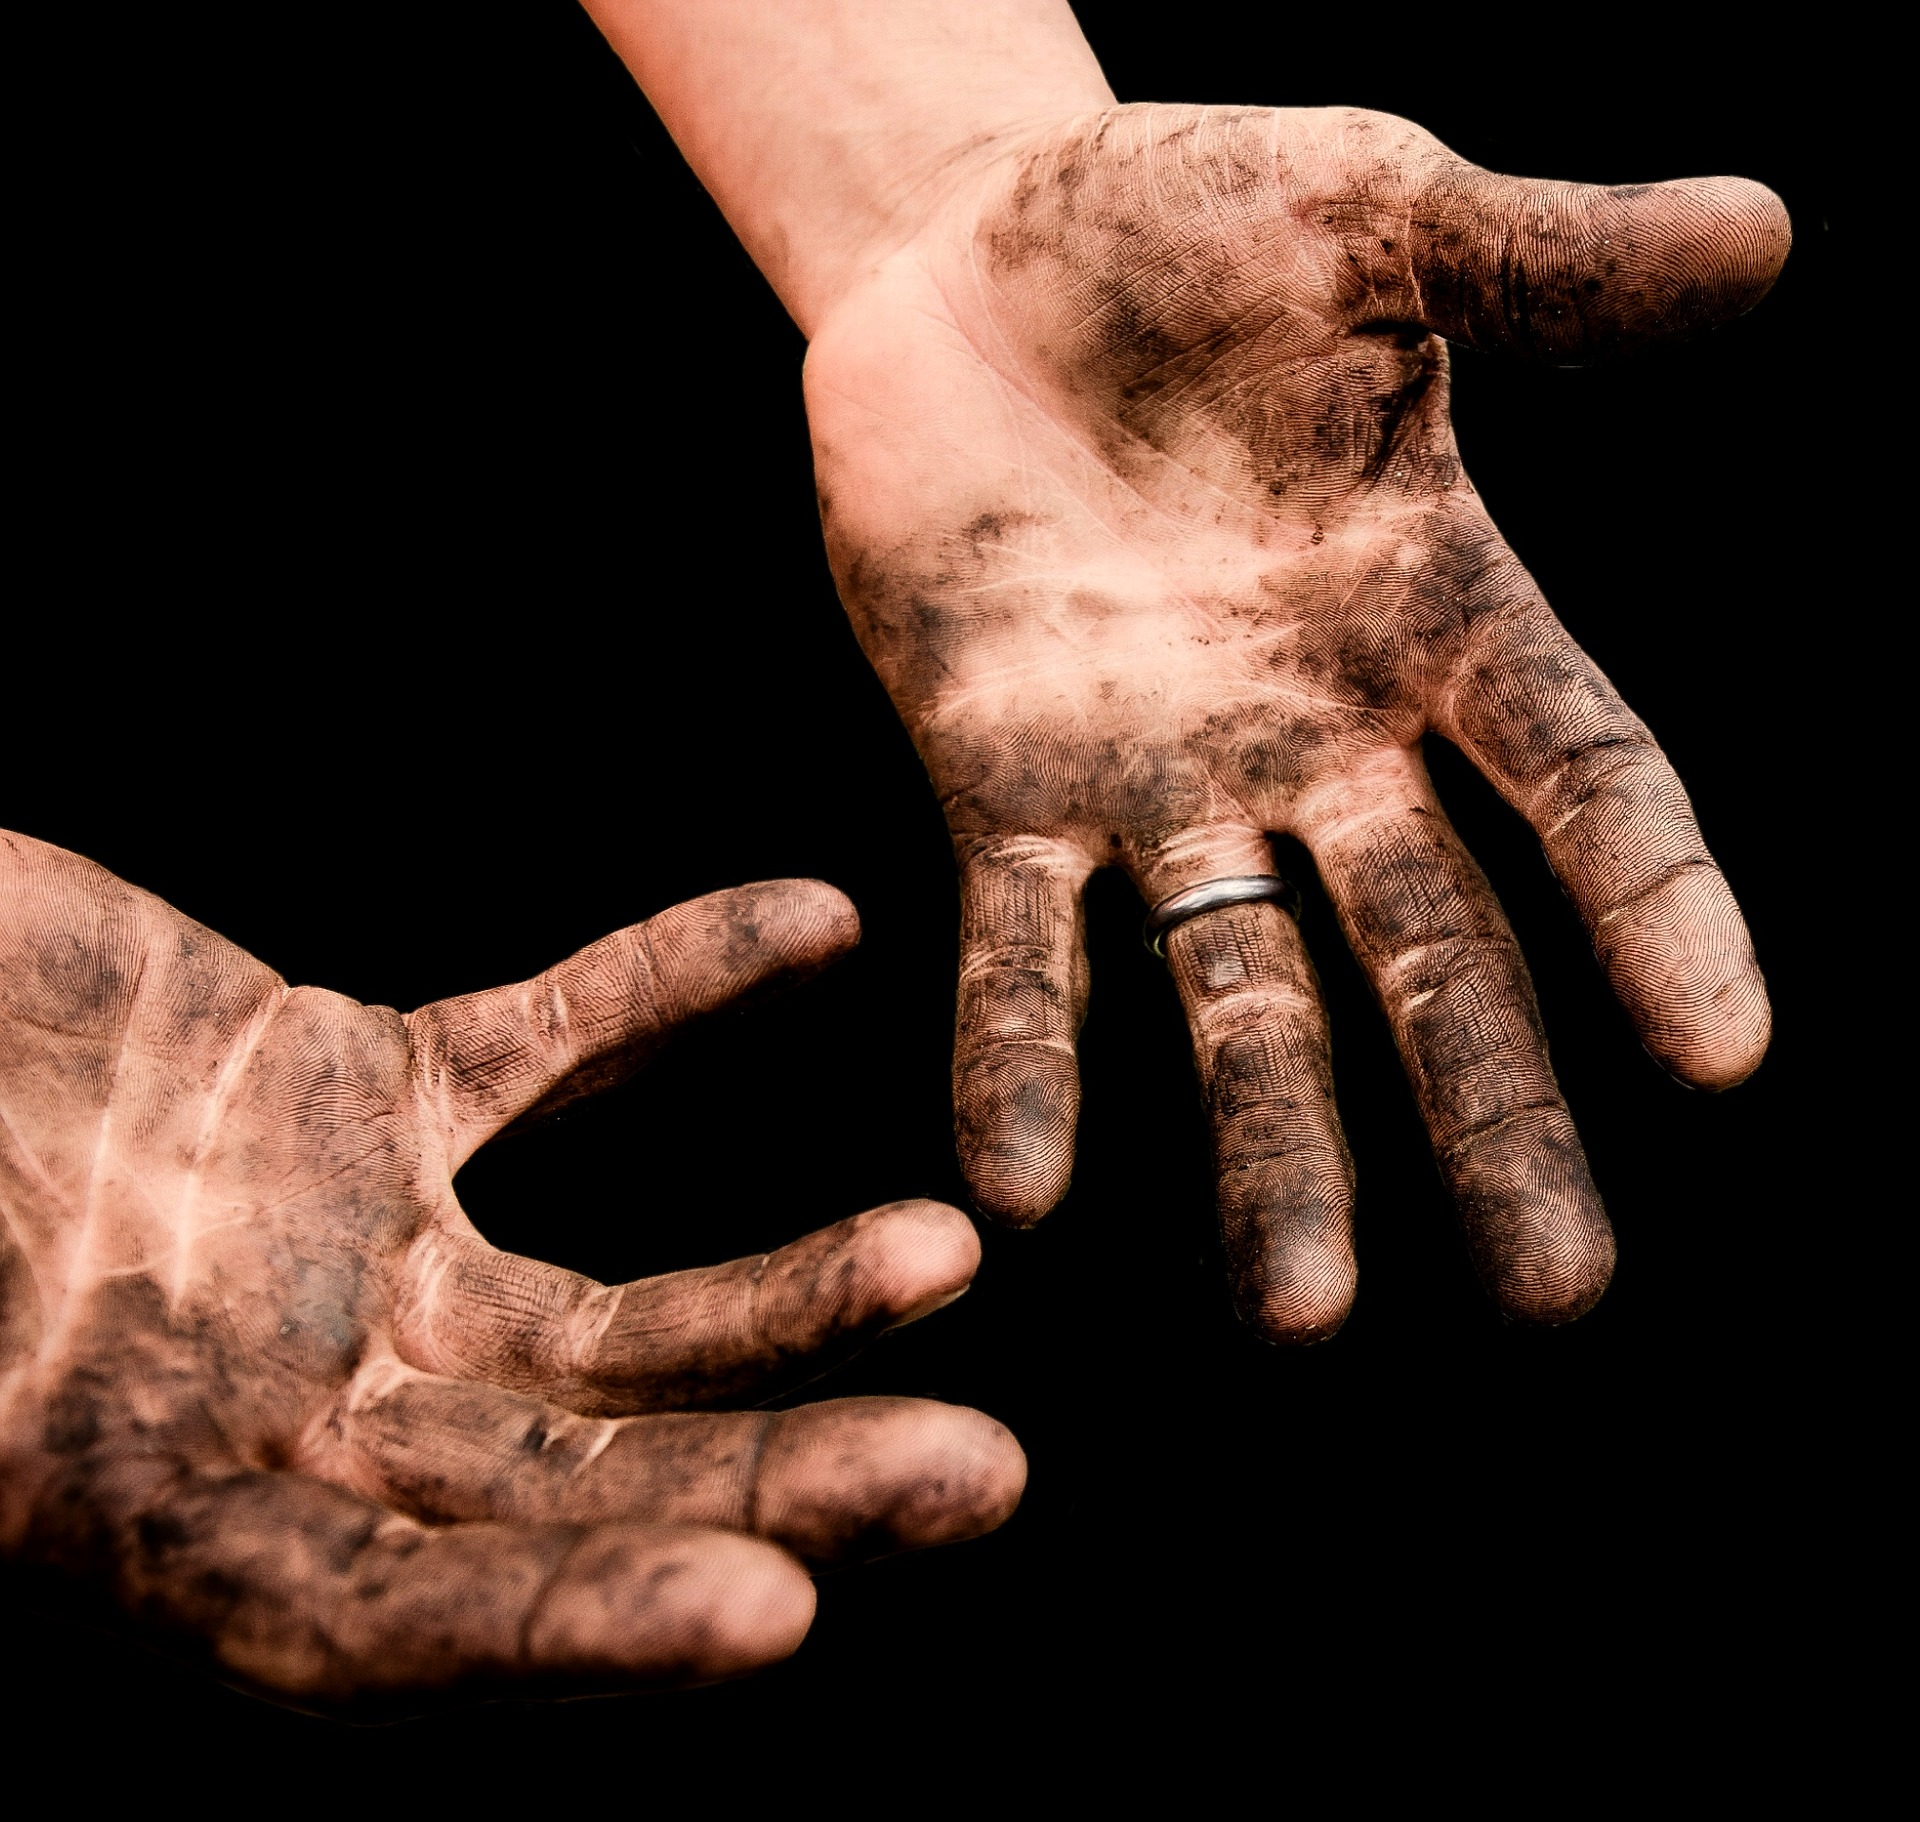 What is Occupational Skin Disease? How Can I Prevent It?